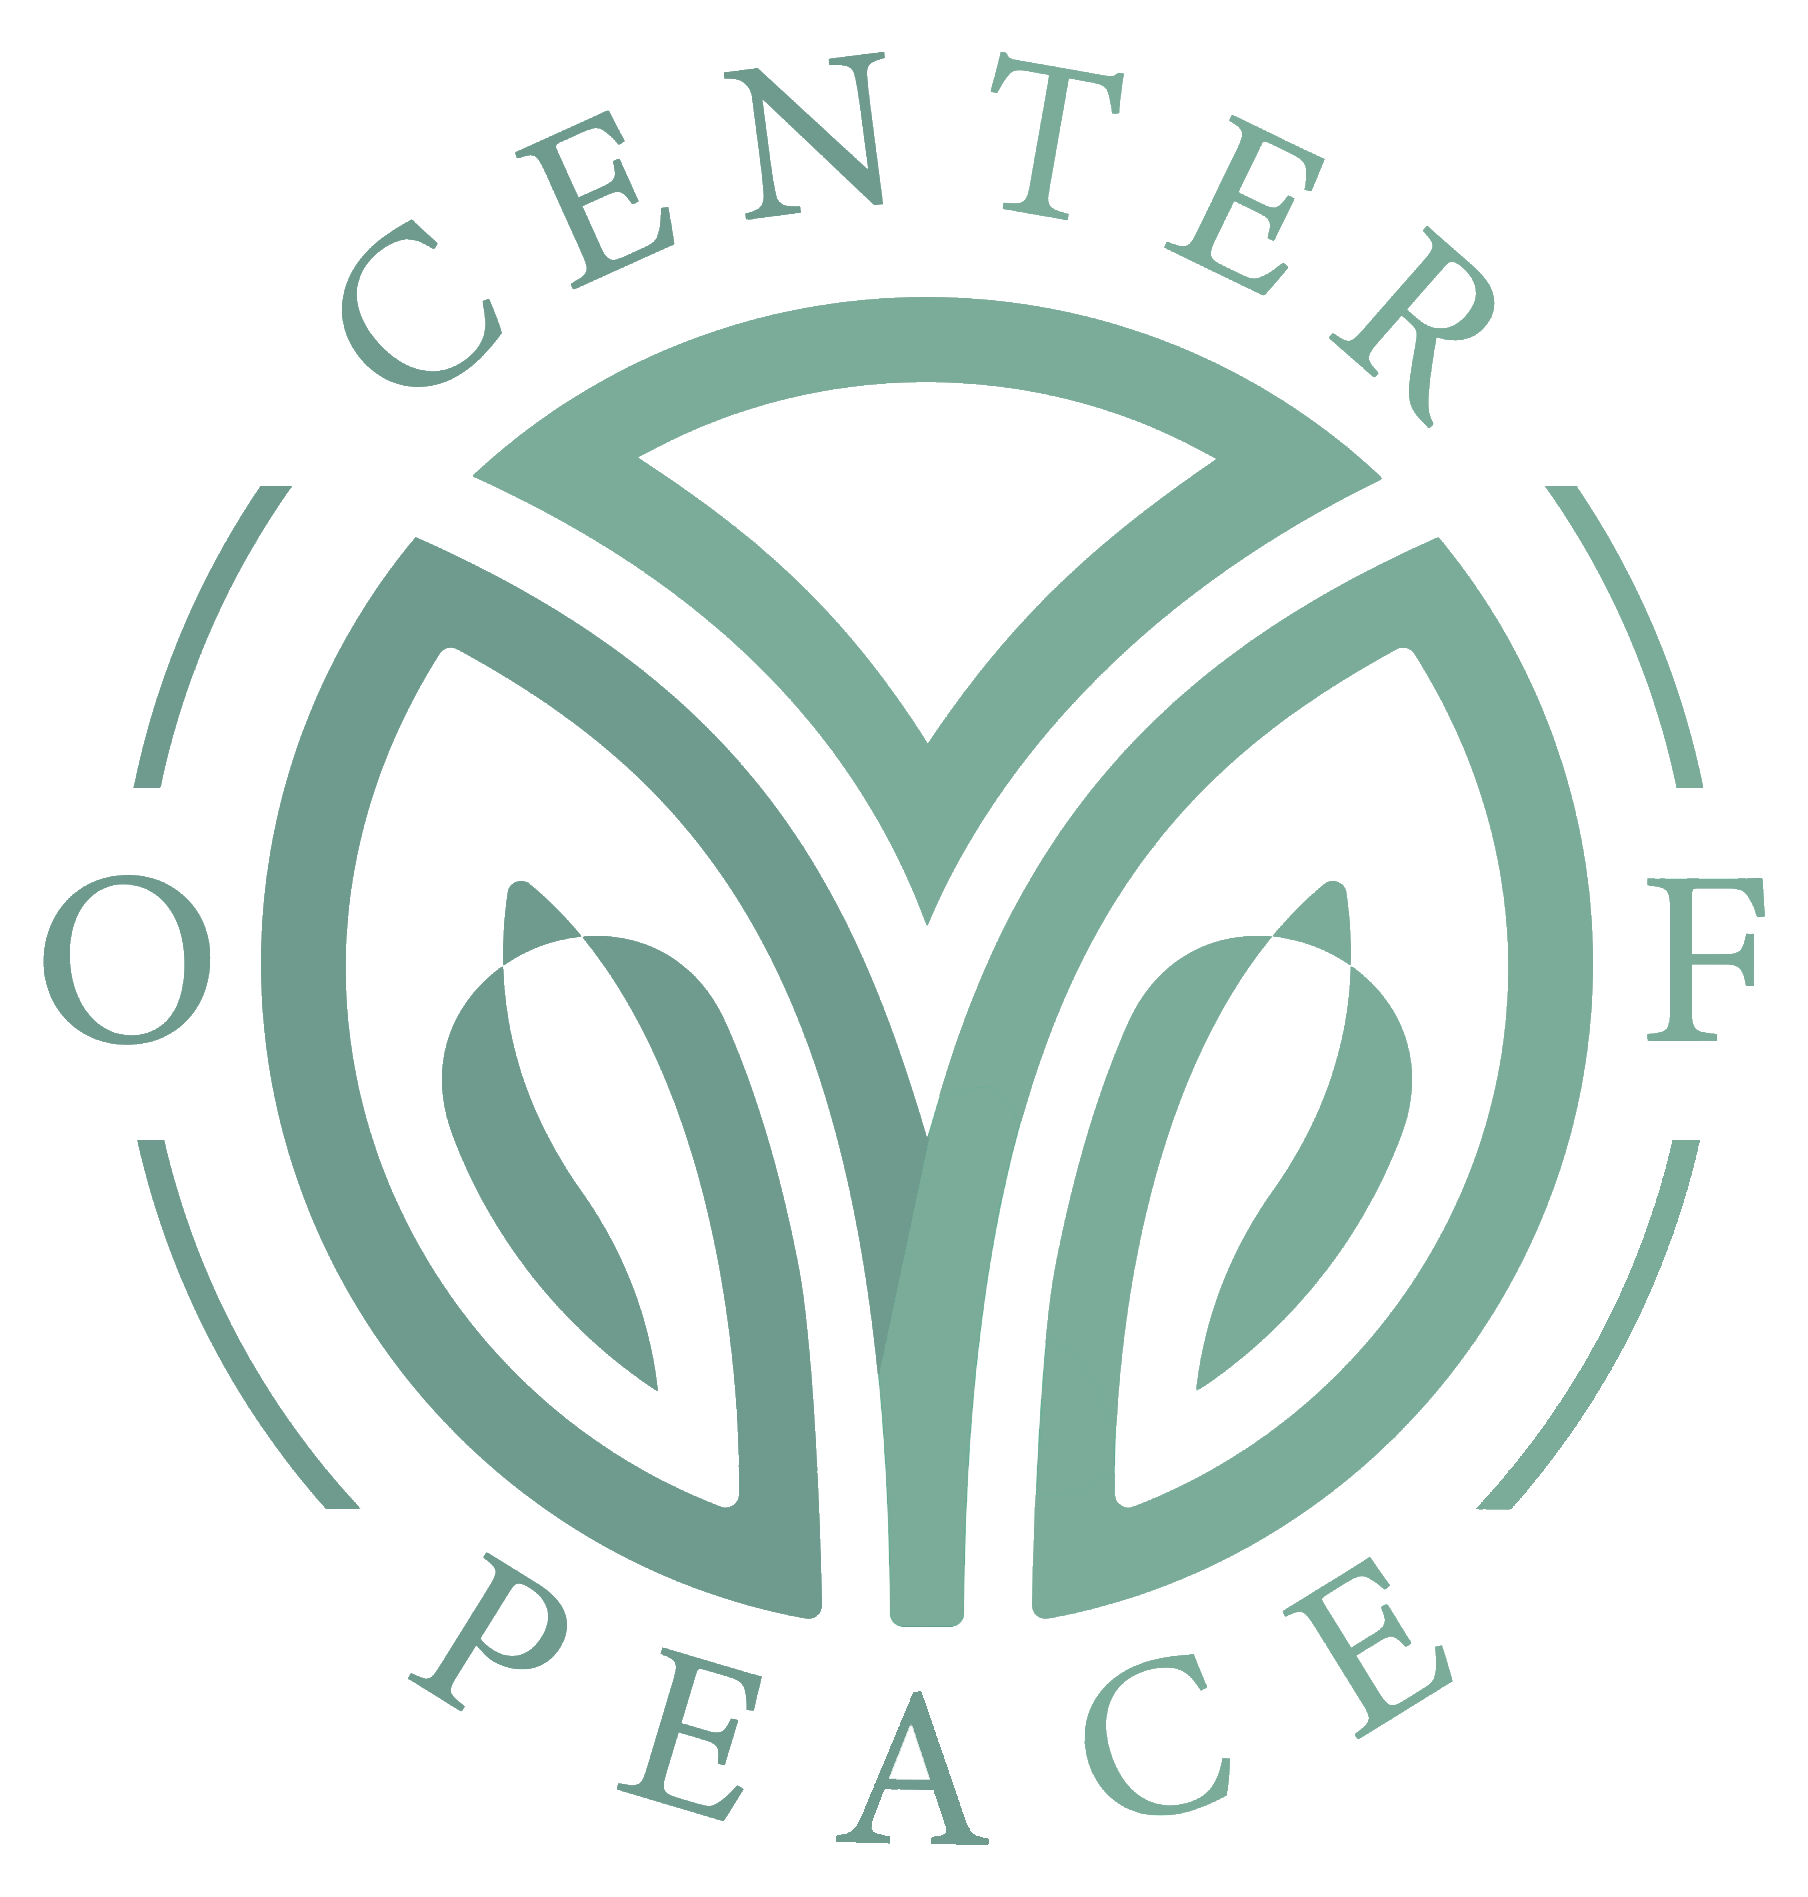 Center of Peace